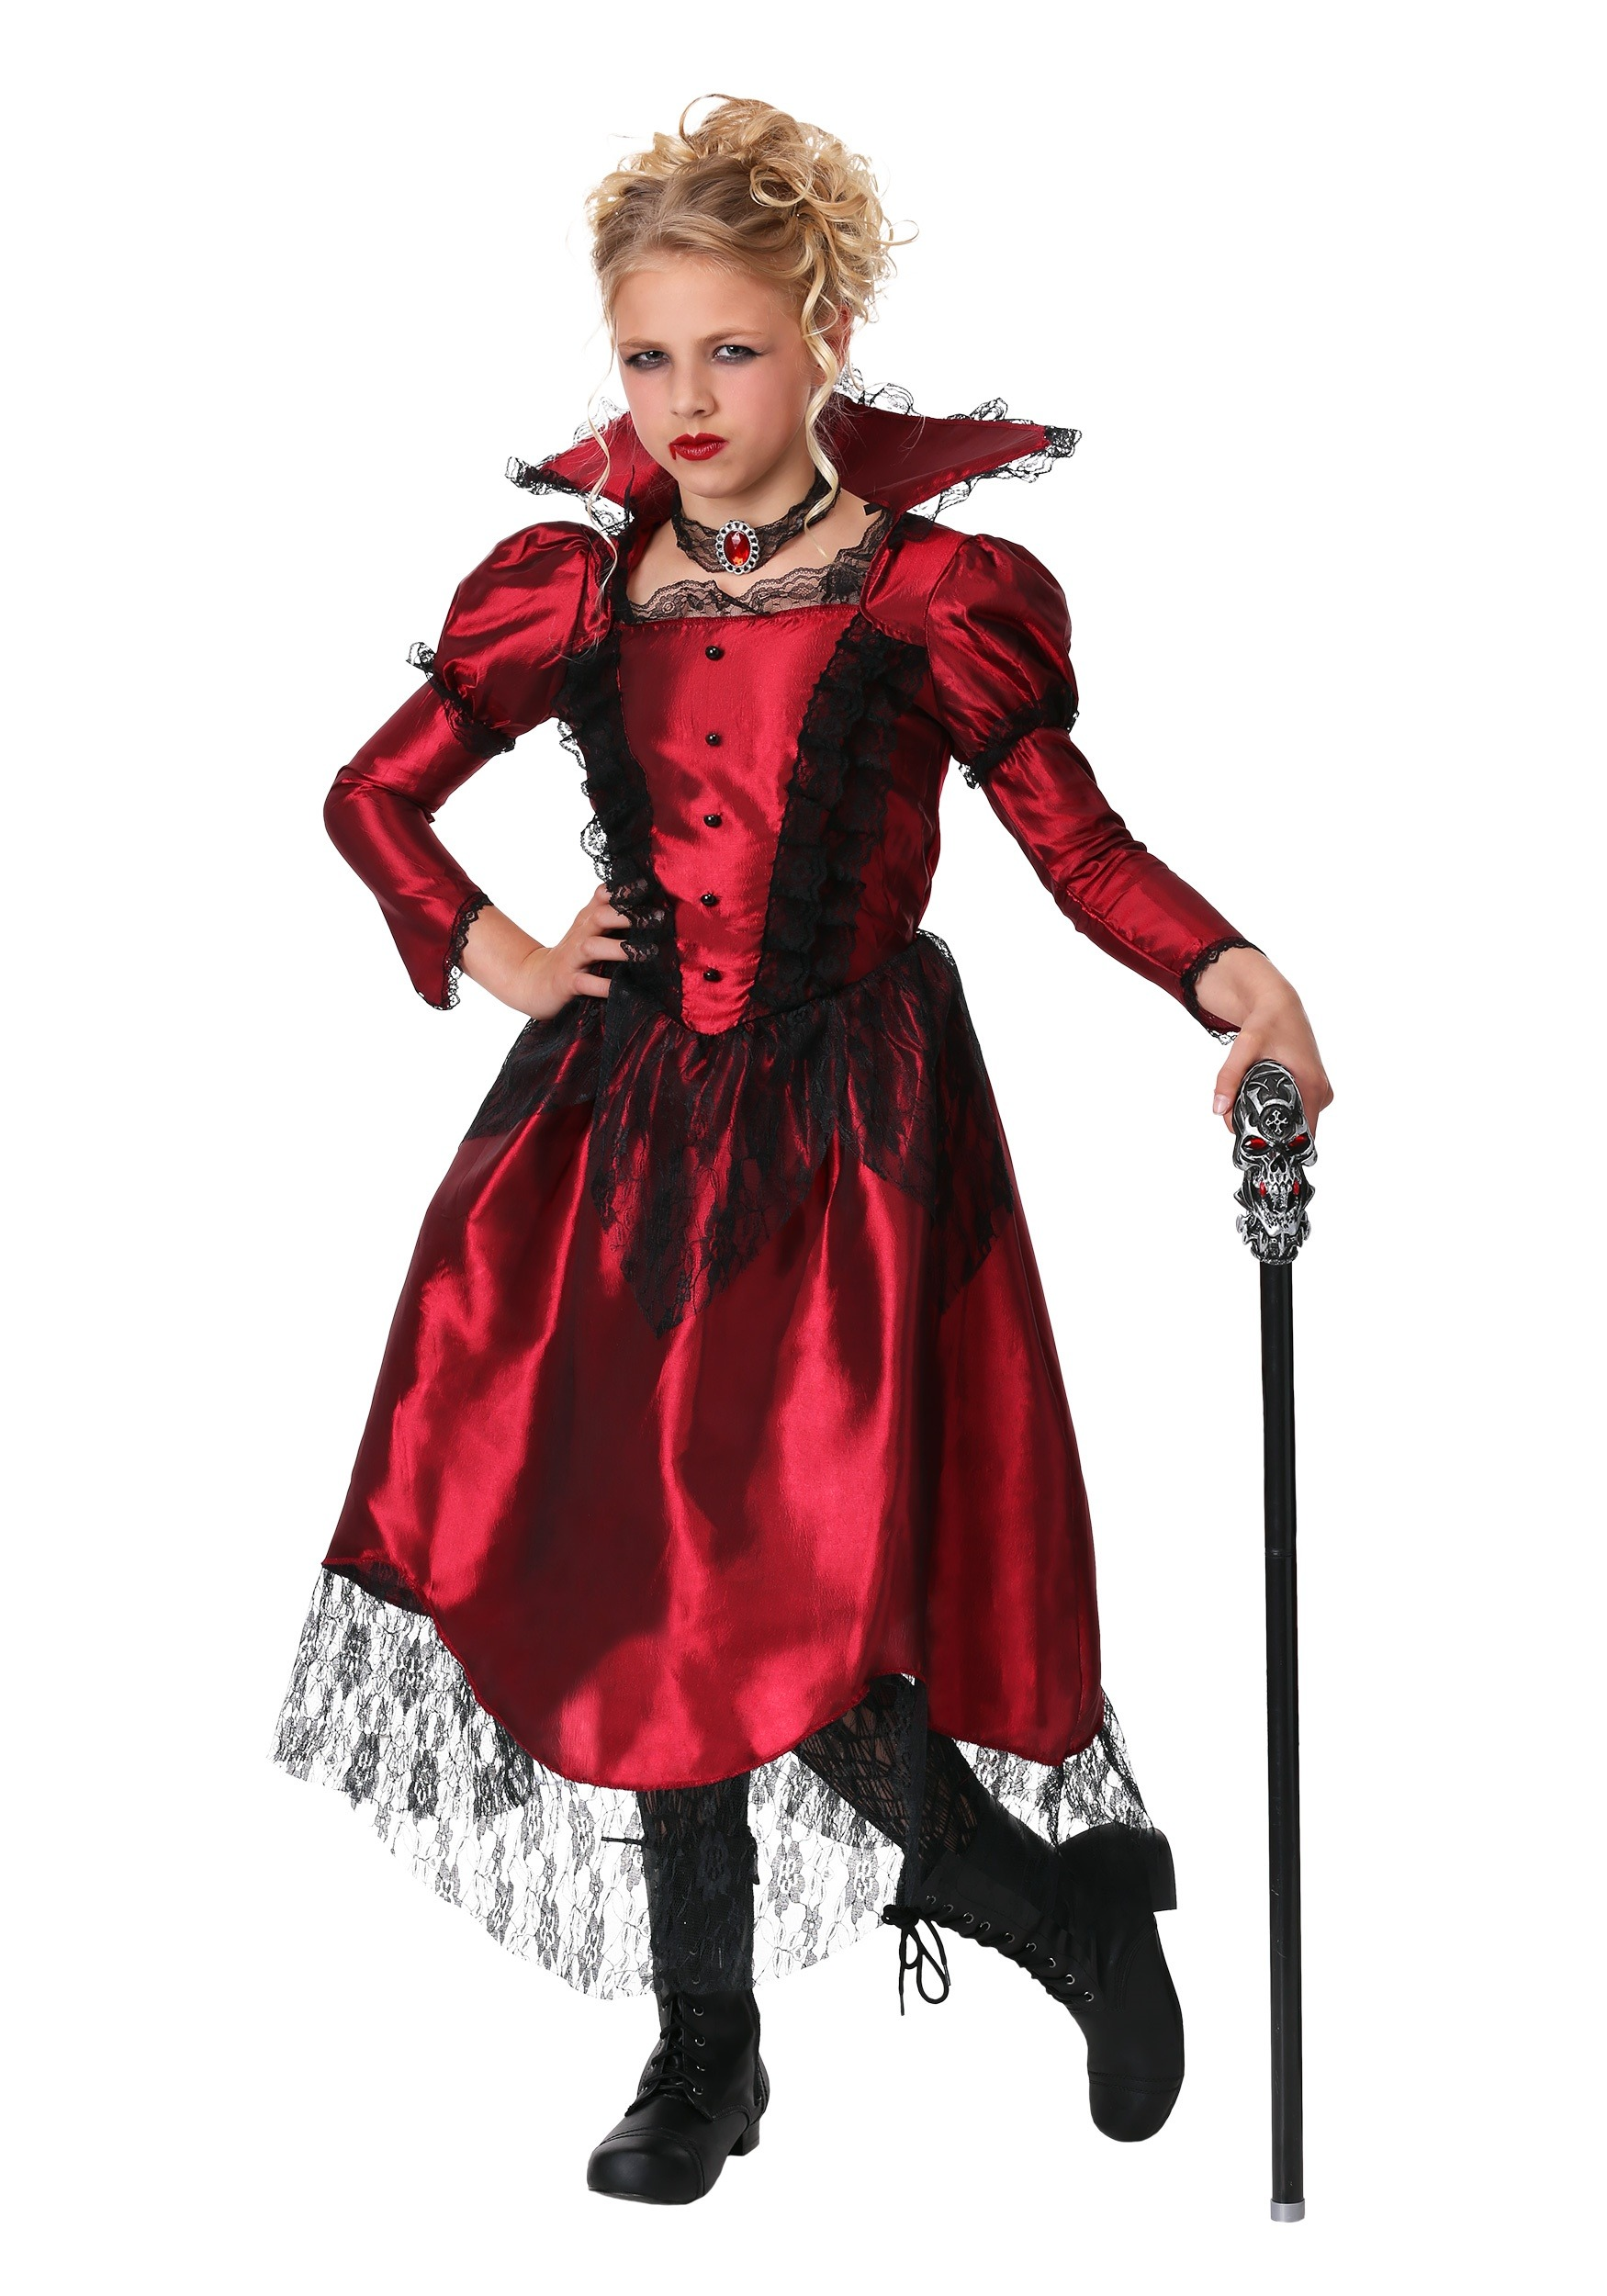 Robust Kids Girl Vampire Costumes Party City Girl Vampire Costume Amazon Girls Classic Vampire Costume Vampire Costumes baby Girls Vampire Costume